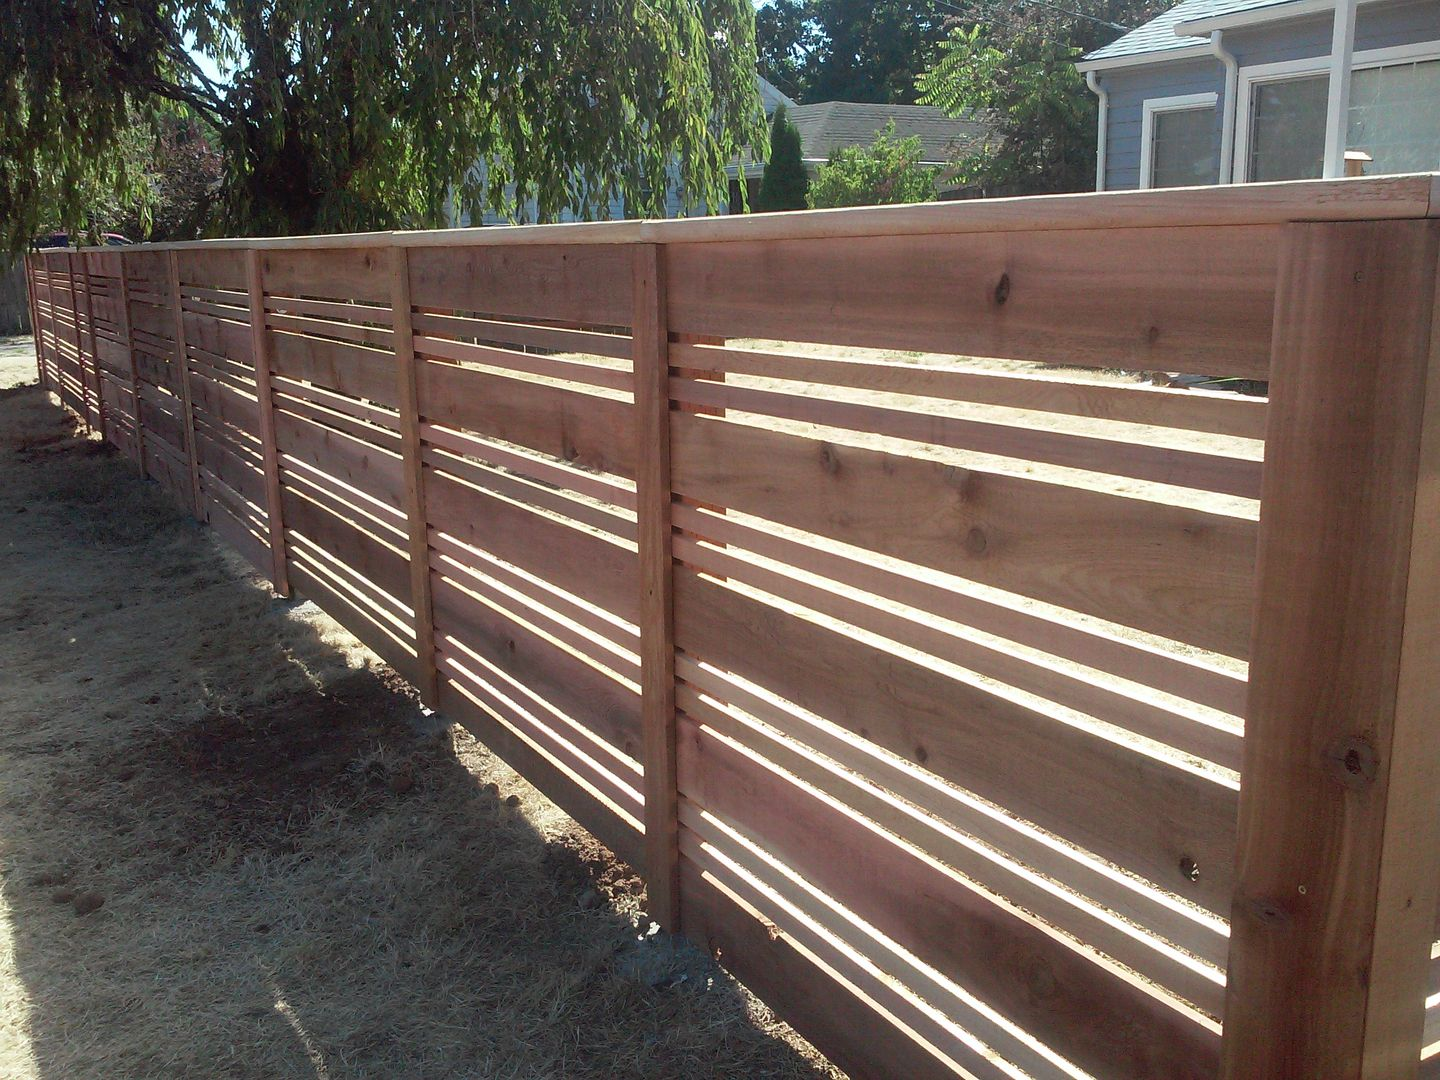 Horizontal Fence Design Installation And Repair Visit Our Website Today For More Info Photos Free Estimates Www Cedarfencingportland